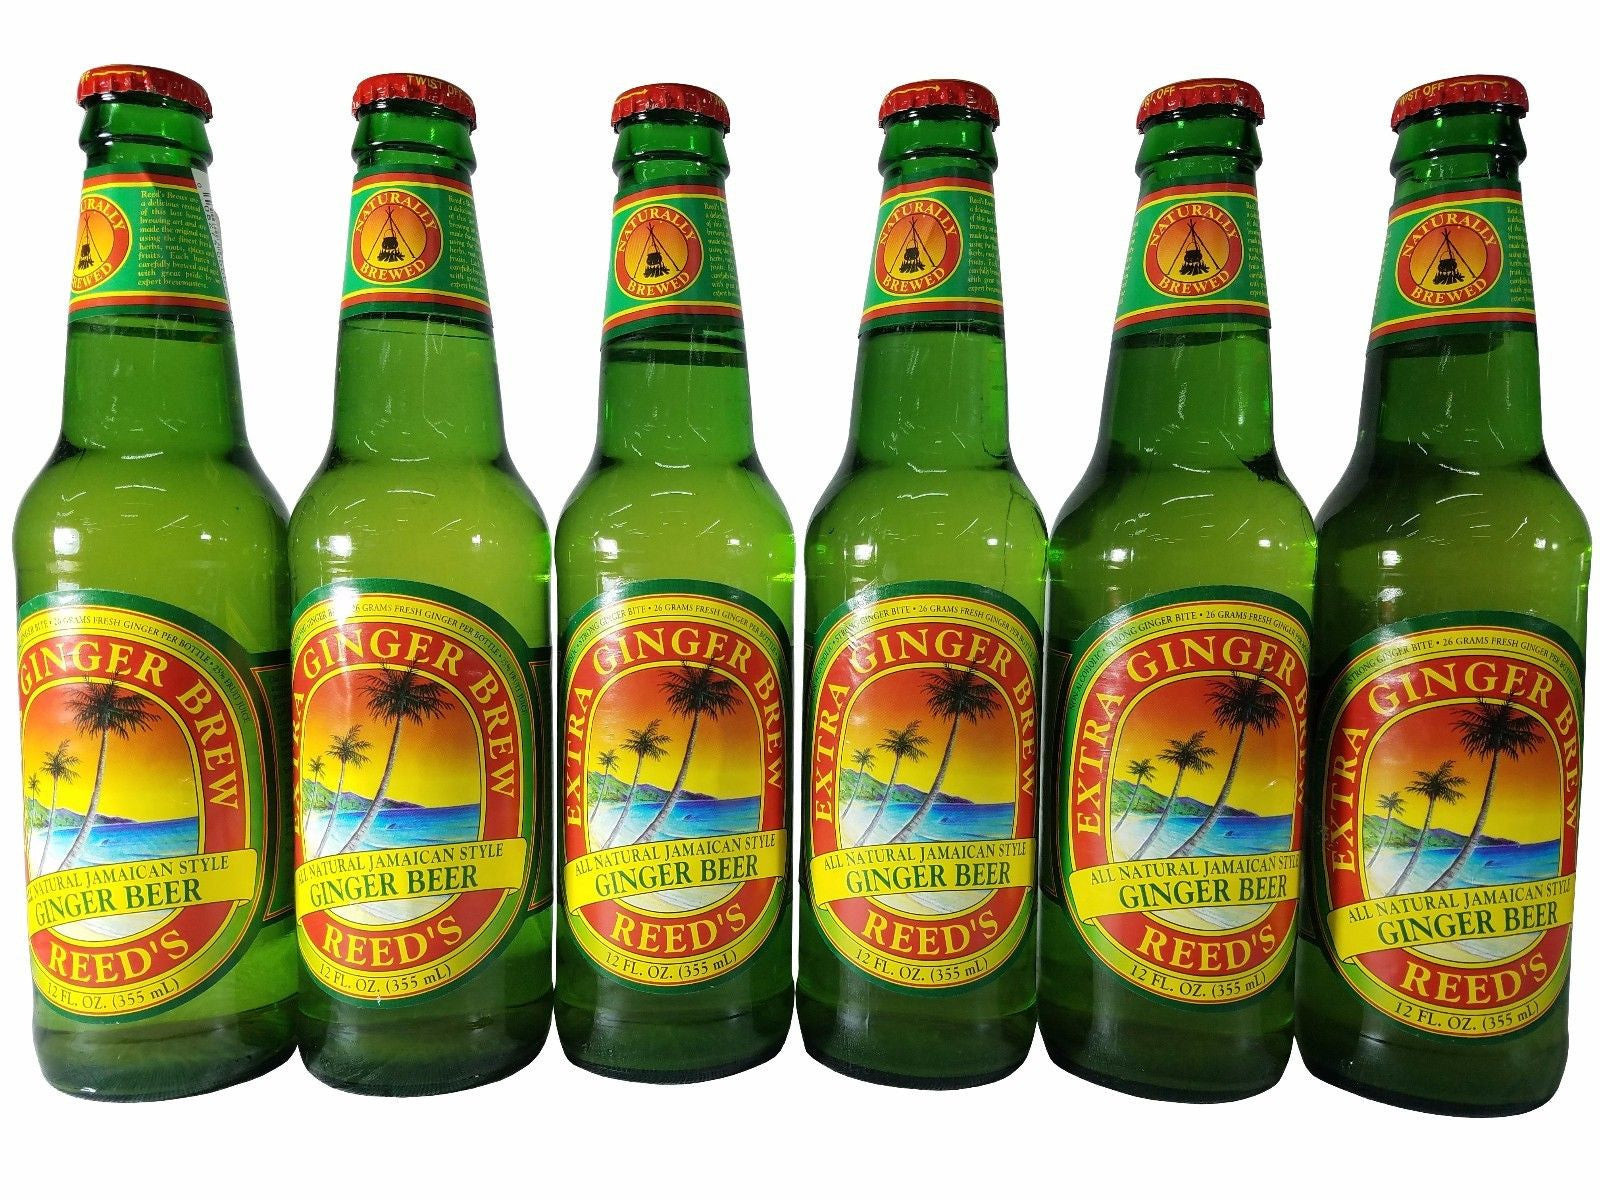 Reed's Extra Ginger Brew Jamaican Style Ginger Beer 12 OZ Non-Alcoholic 6 Pack